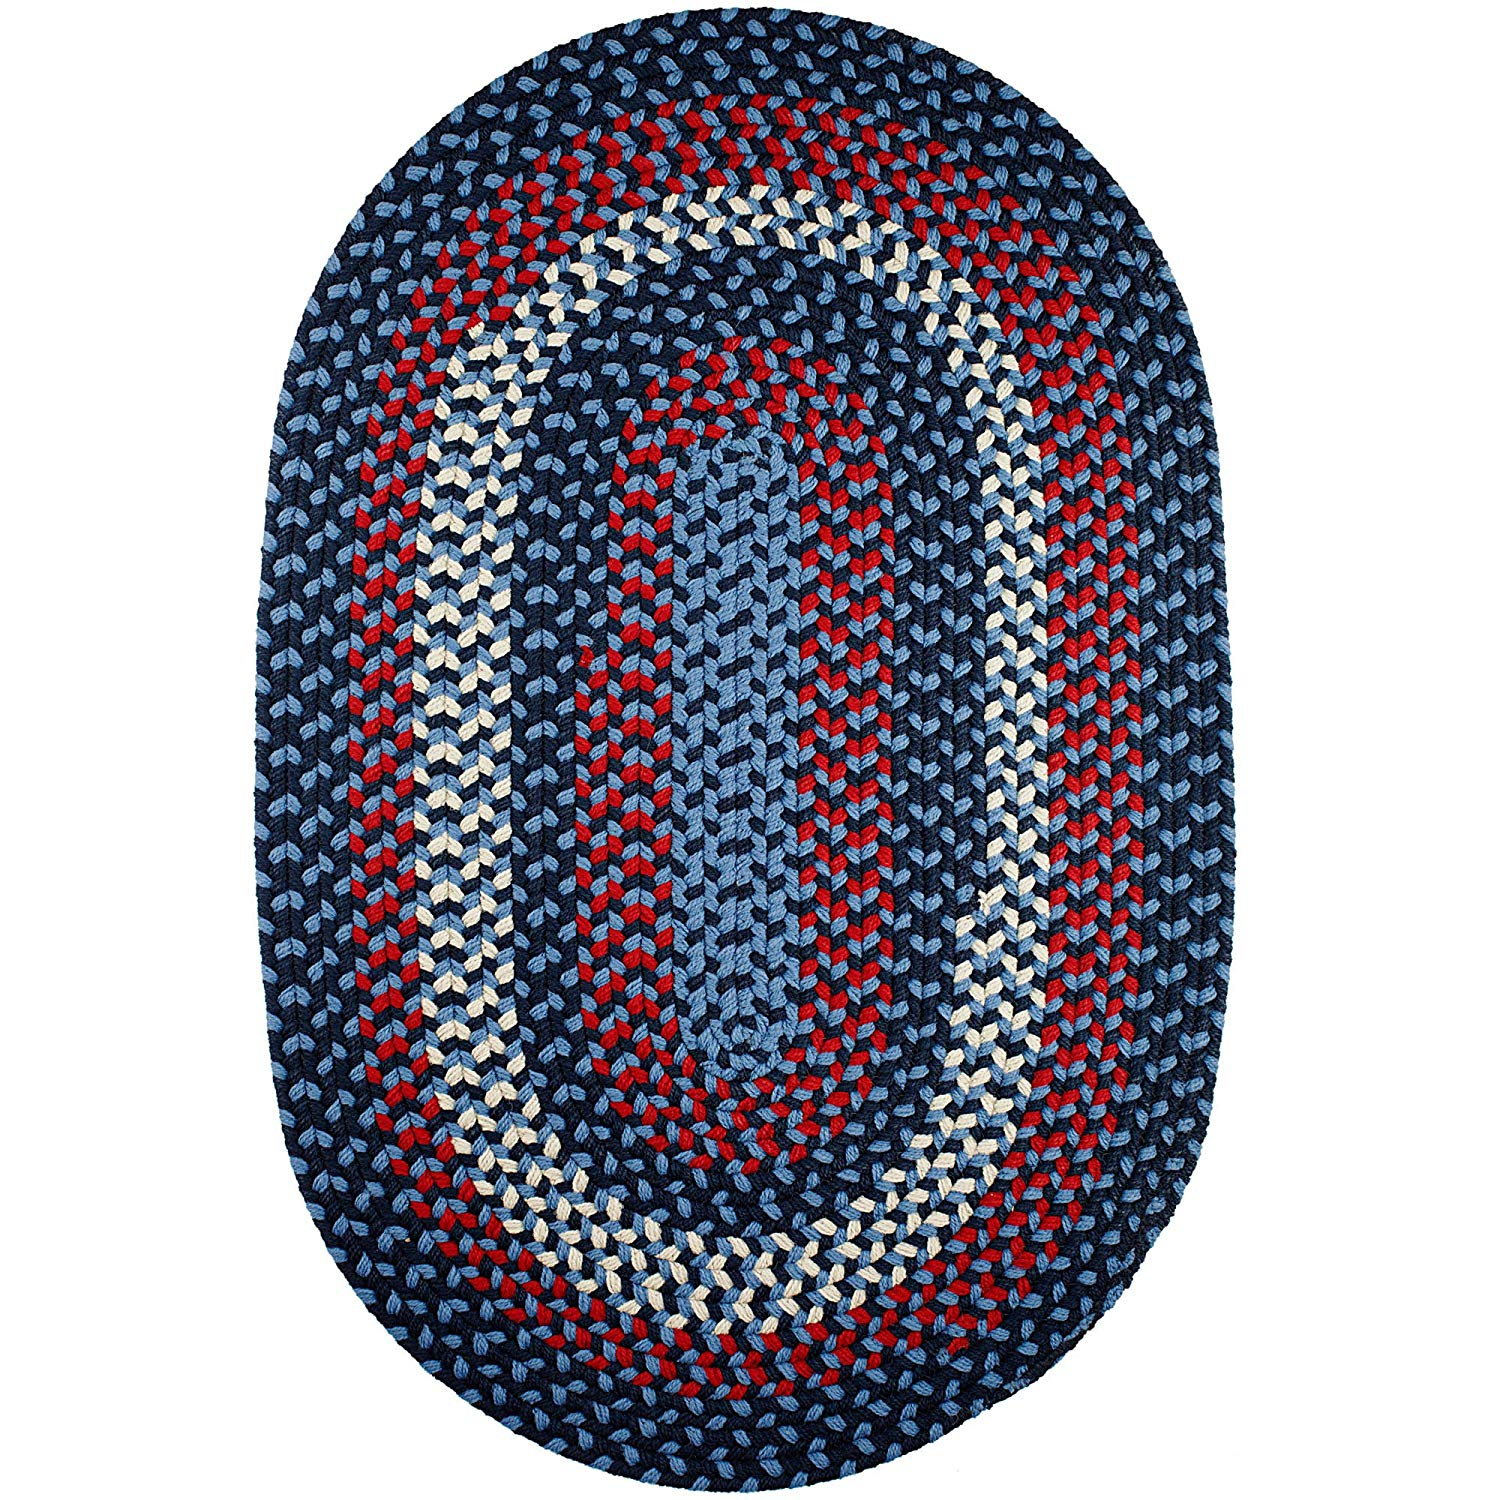 Super Area Rugs Homespun Braided Rug Indoor Outdoor Rug Textured Durable Blue Patio Deck Carpet, 3' X 5' Oval